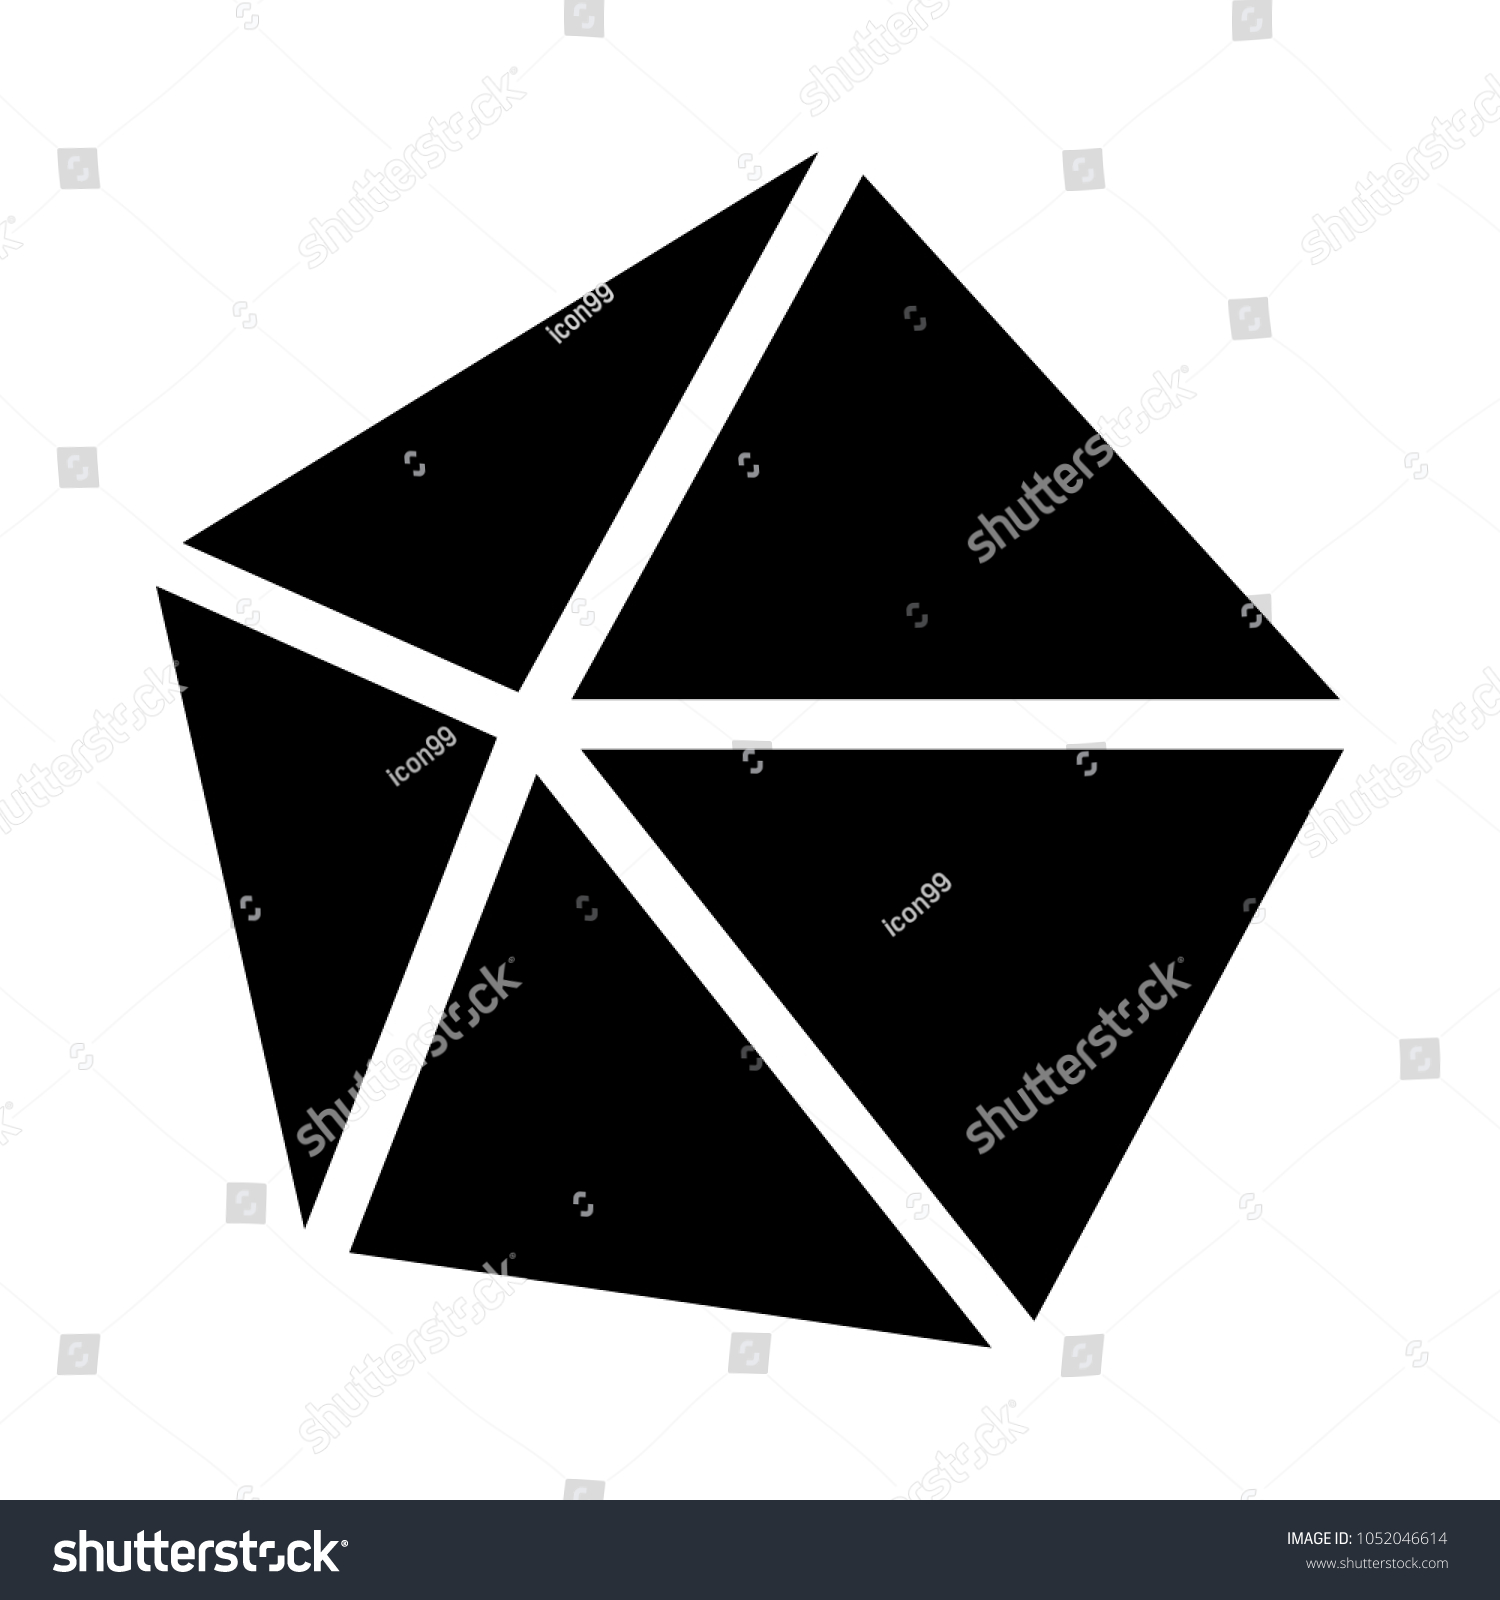 decahedron convex shape stock vector royalty free 1052046614